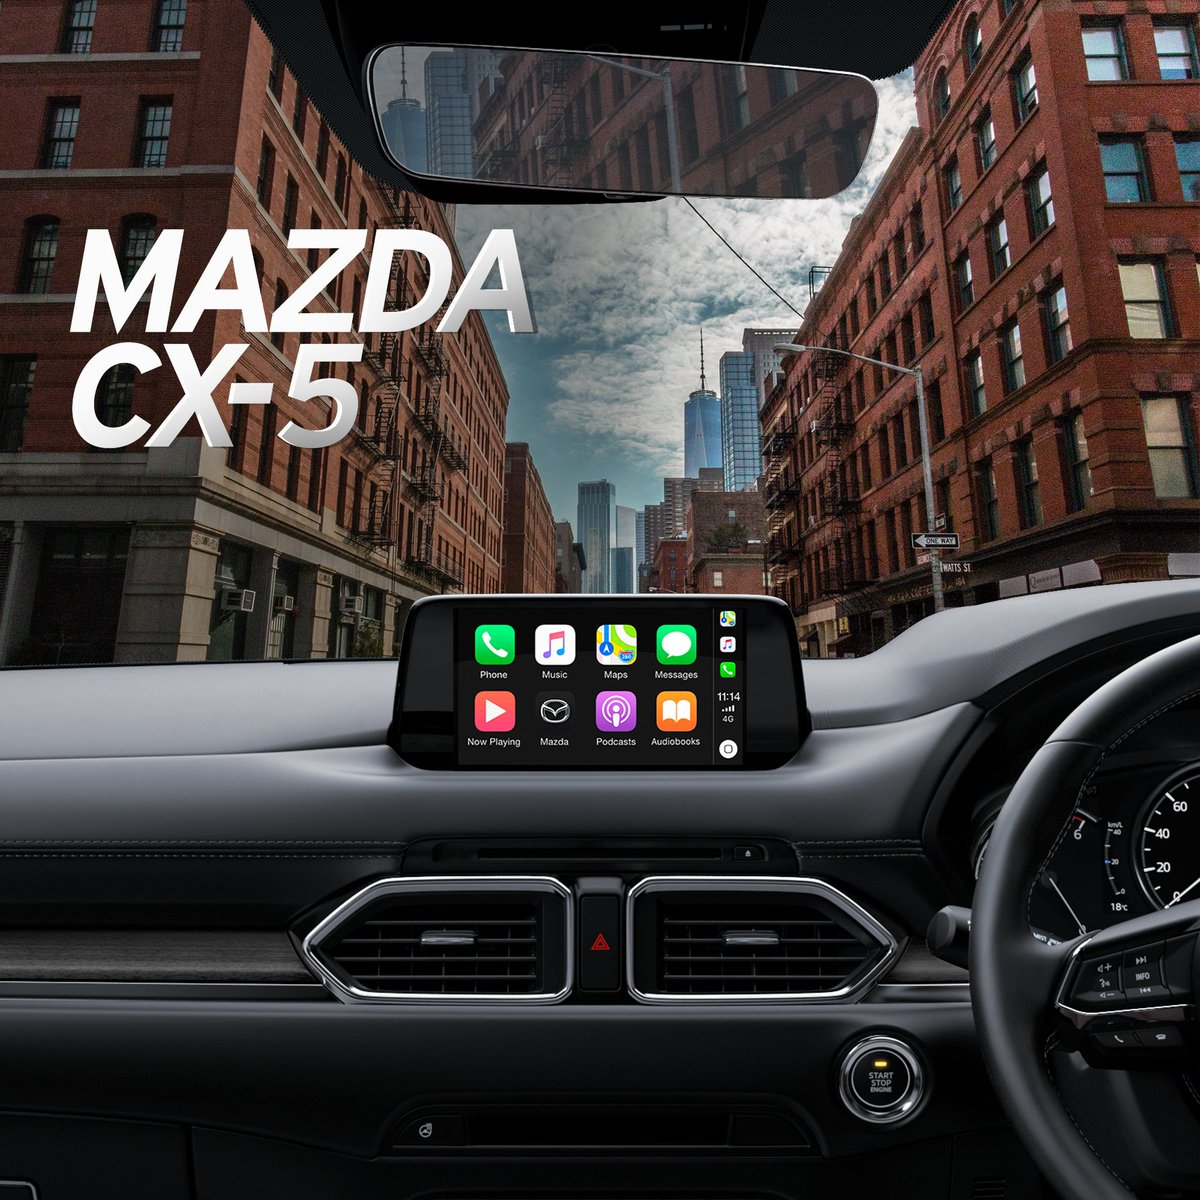 Mazdacx5 Twitter Search